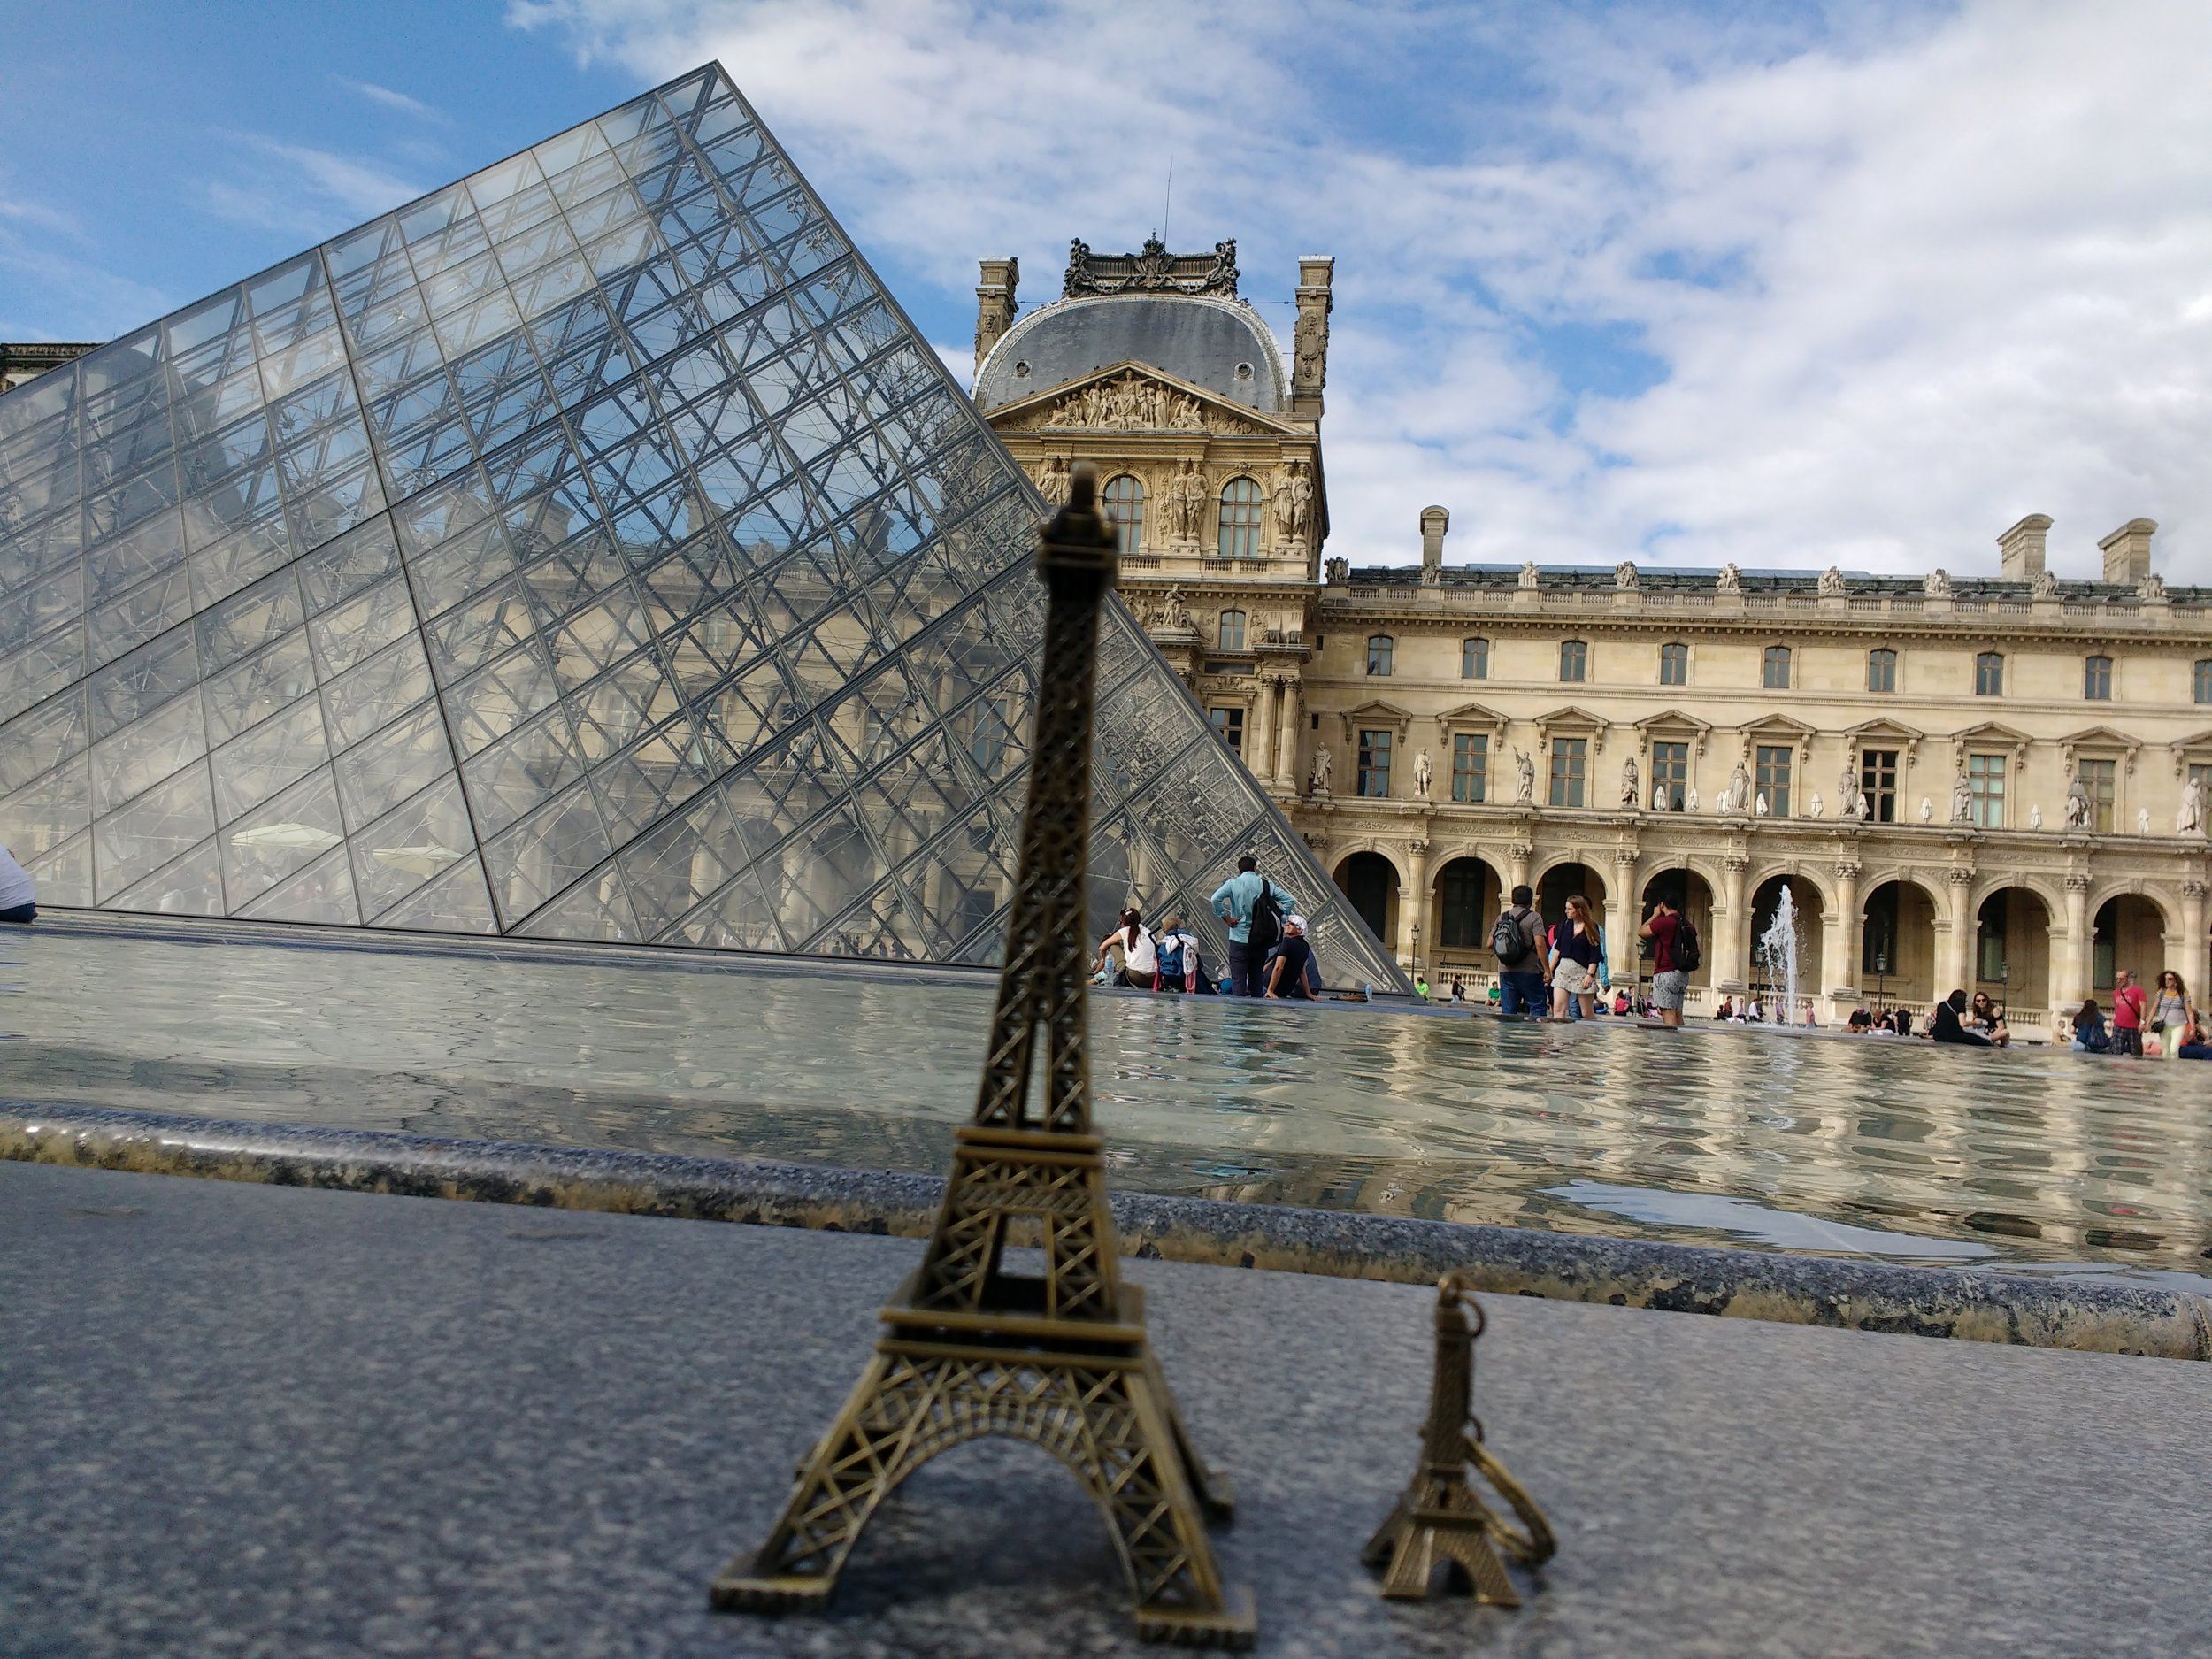 Home of Mona Lisa- The Louvre Museum in the Background